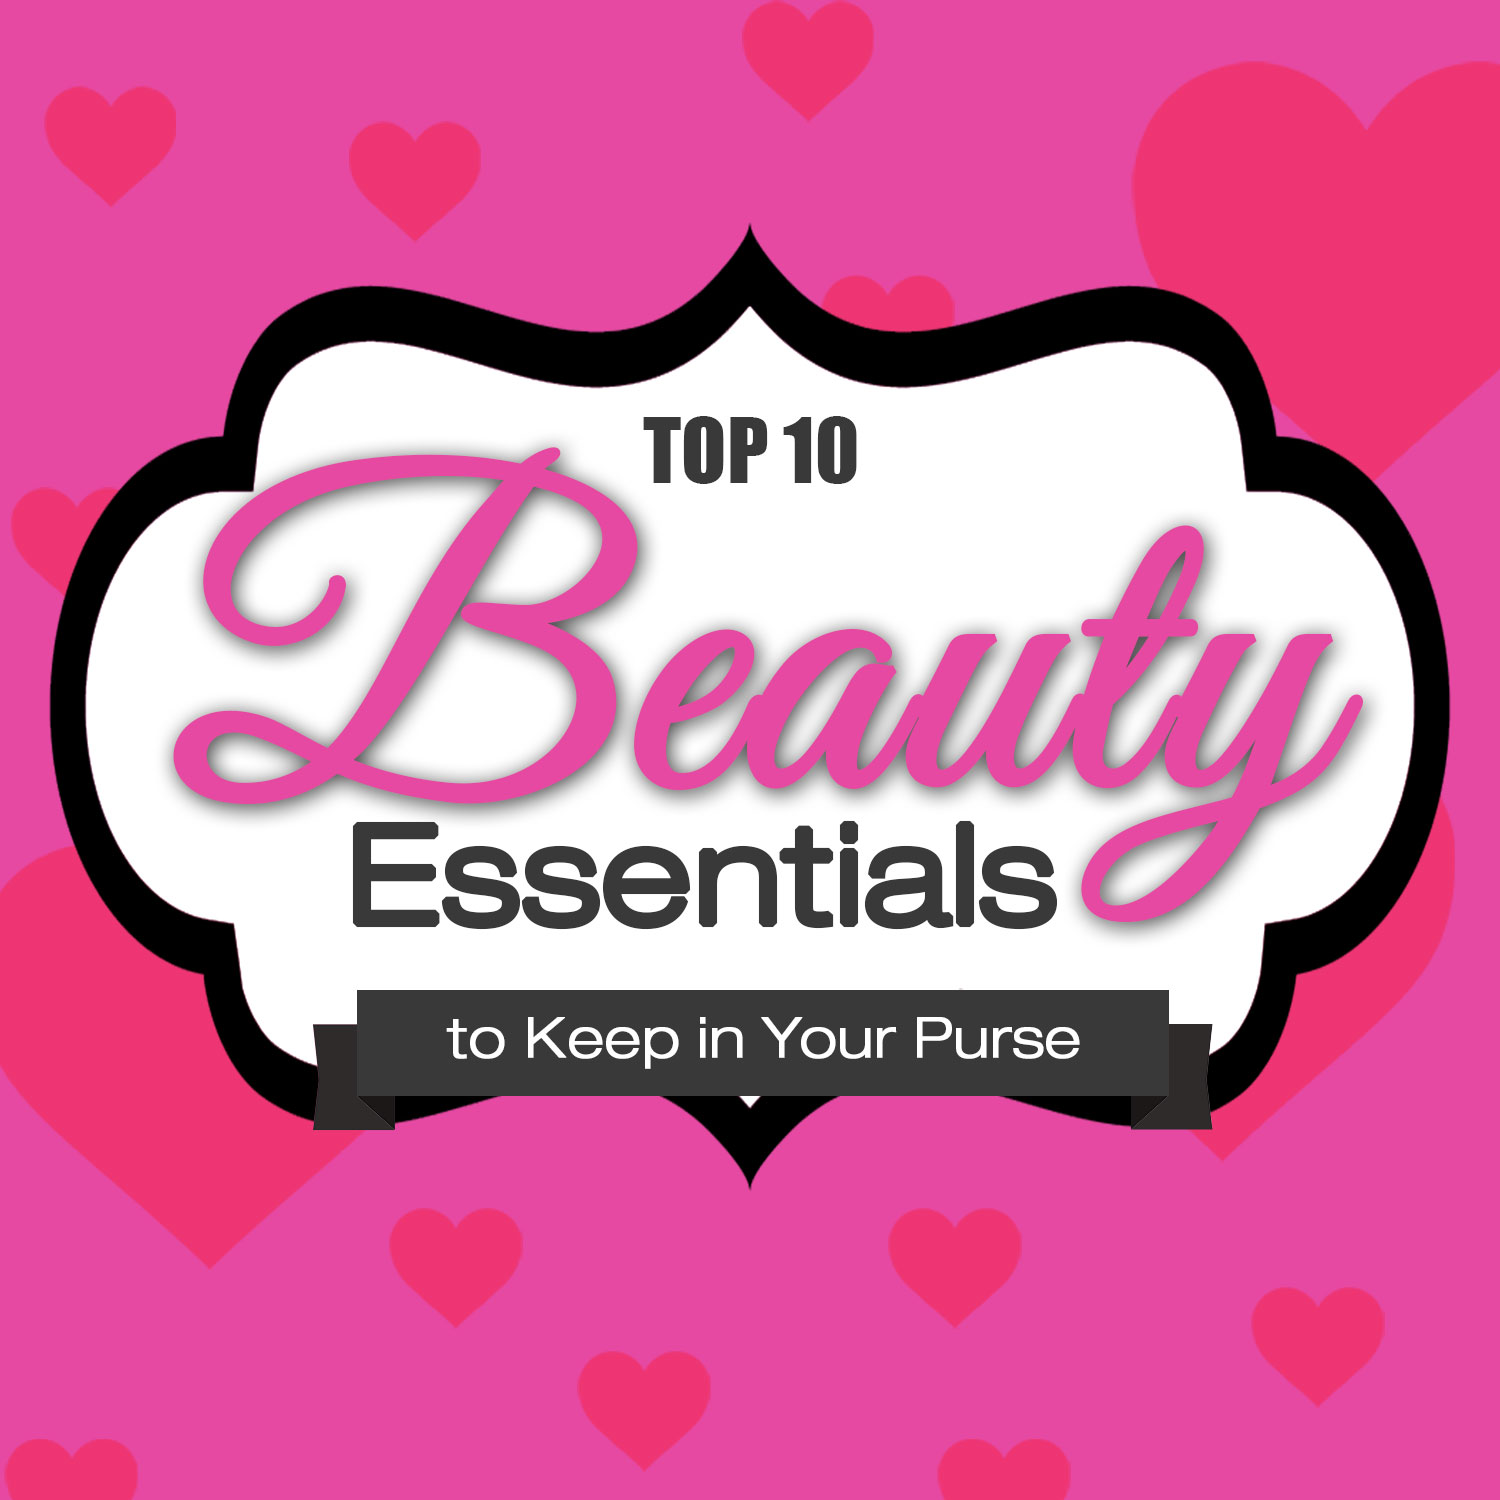 Beauty Essentials to Keep in Your Purse this Valentine's Day